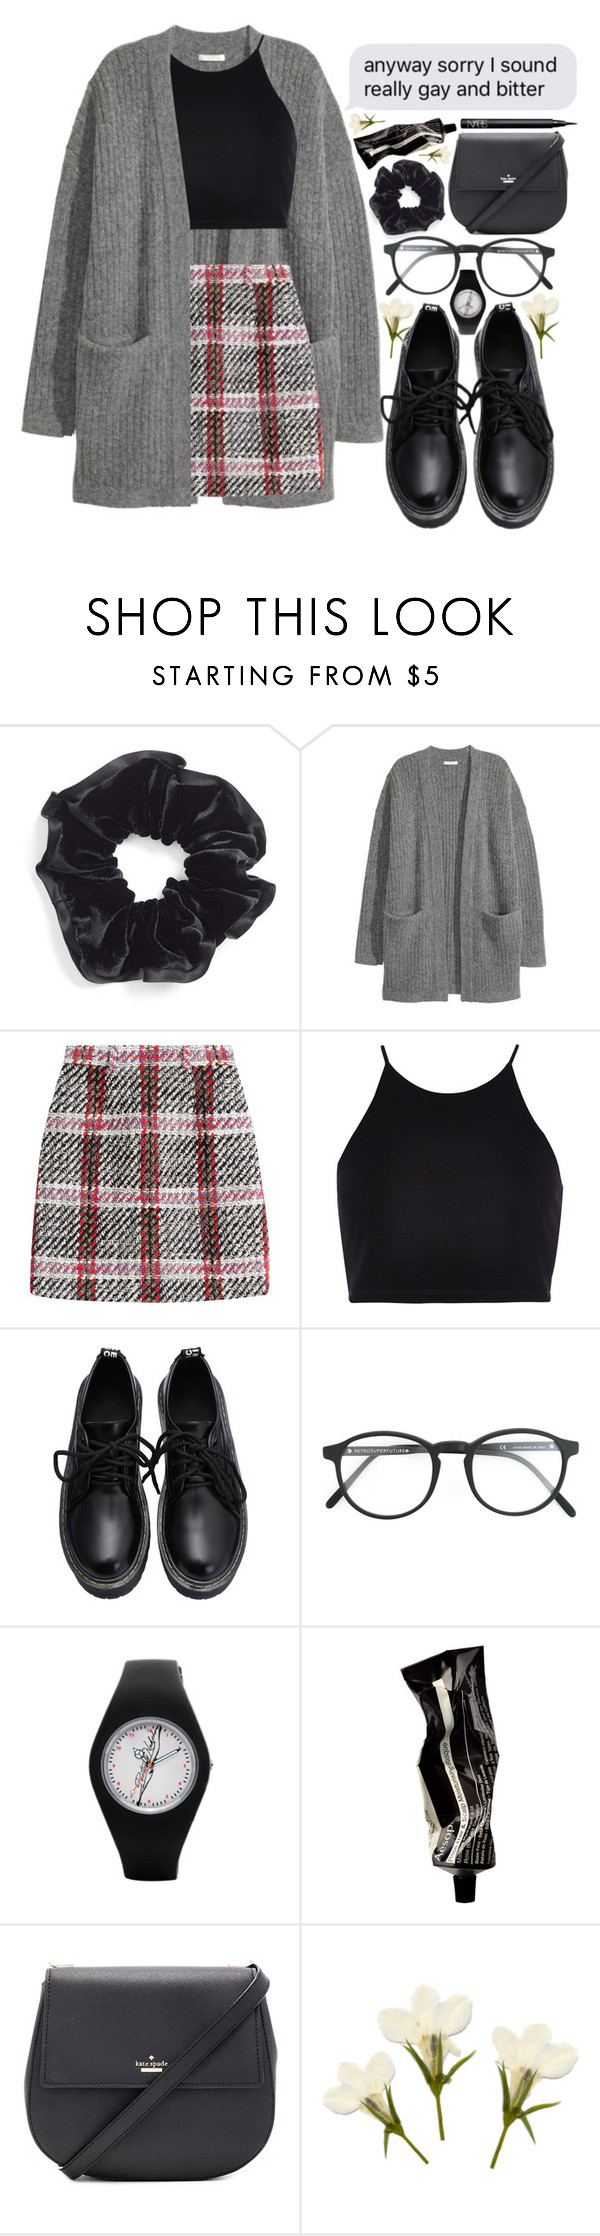 """""""happy national coming out day"""" by smkingtodth ❤ liked on Polyvore featuring L. Erickson, Carven, River Island, RetroSuperFuture, Aesop, Kate Spade and NARS Cosmetics"""